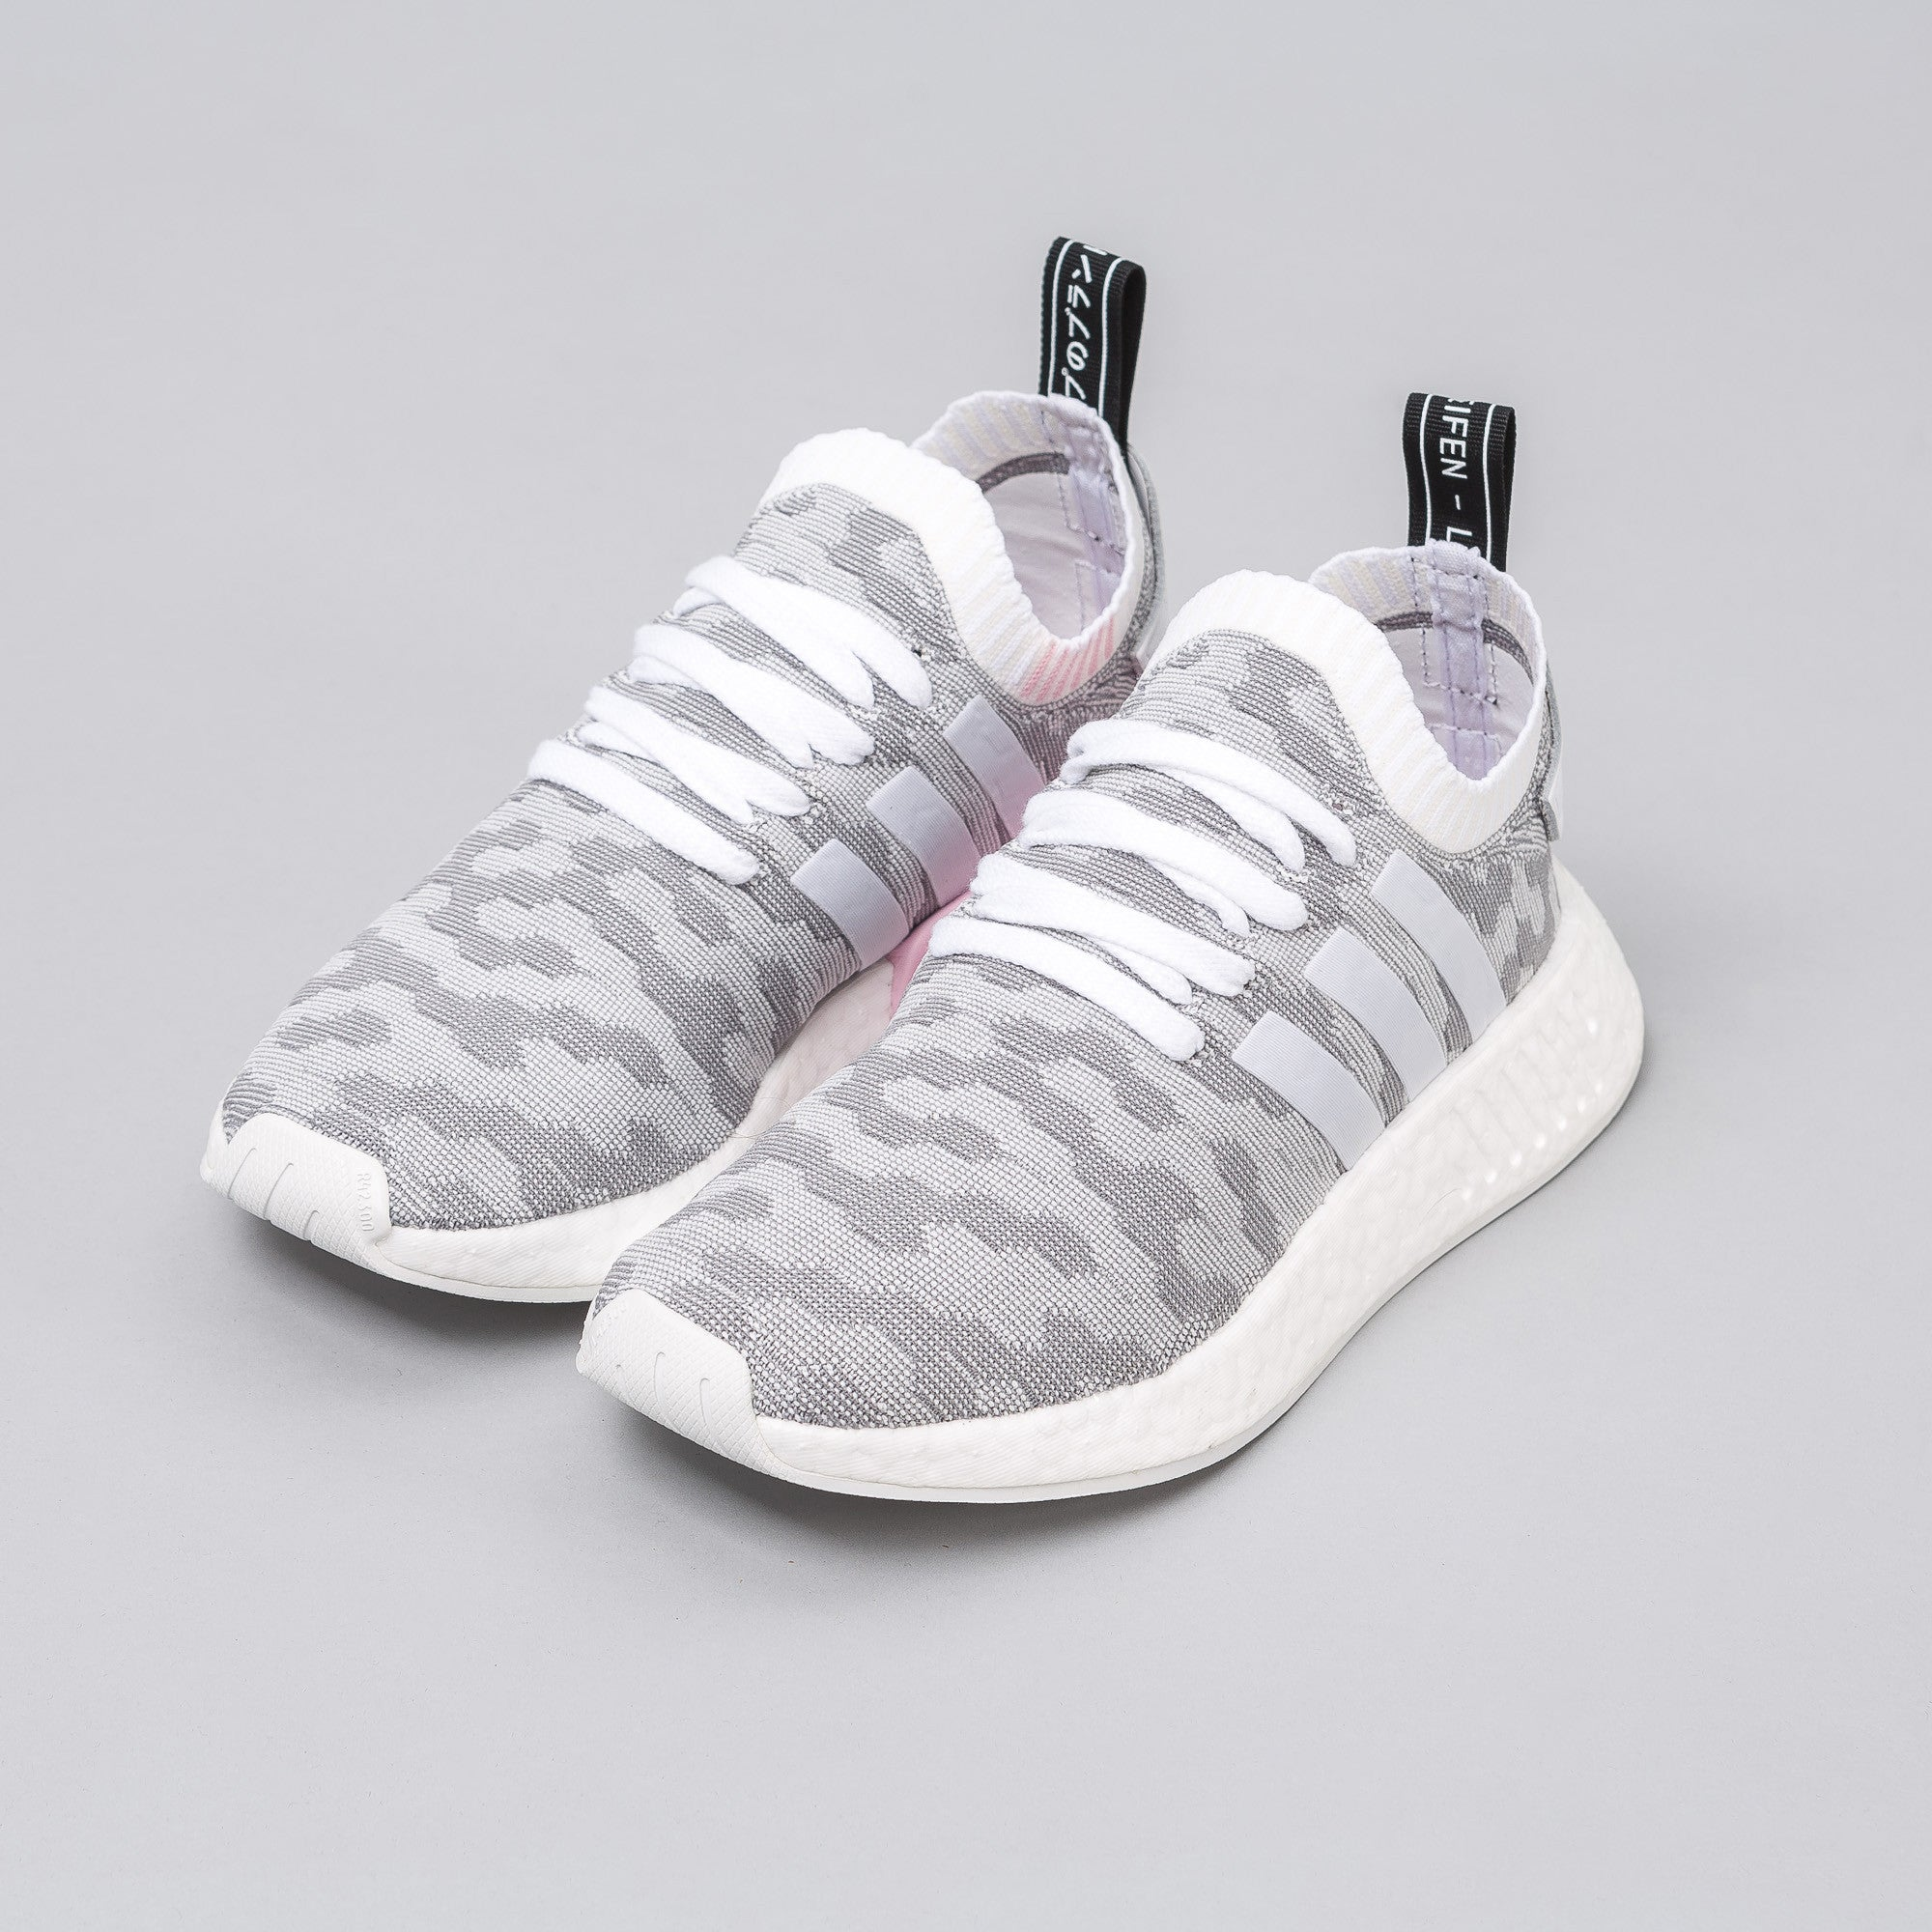 adidas nmd r2 pk womens adidas superstar shoes womens white Equipped ... 840644f5d0